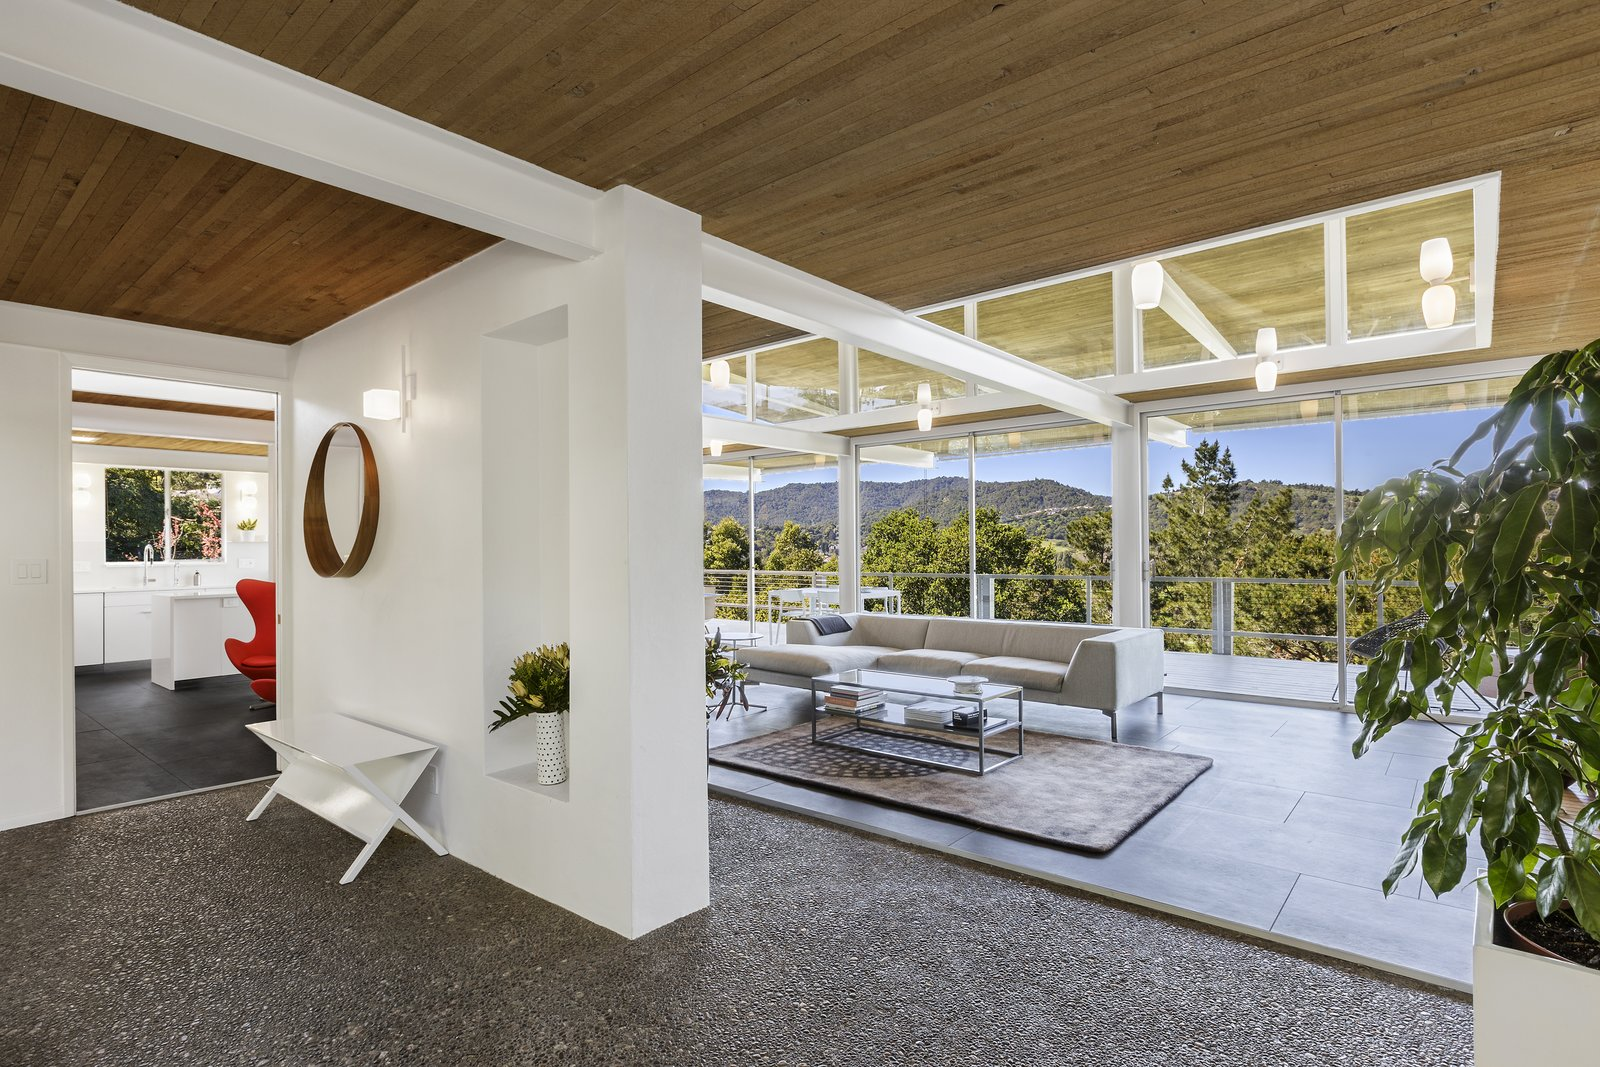 Living Room, Wall Lighting, Coffee Tables, Sectional, Concrete Floor, Rug Floor, and Console Tables  Photo 8 of 17 in Spend the Night in an Iconic Case Study House North of San Francisco